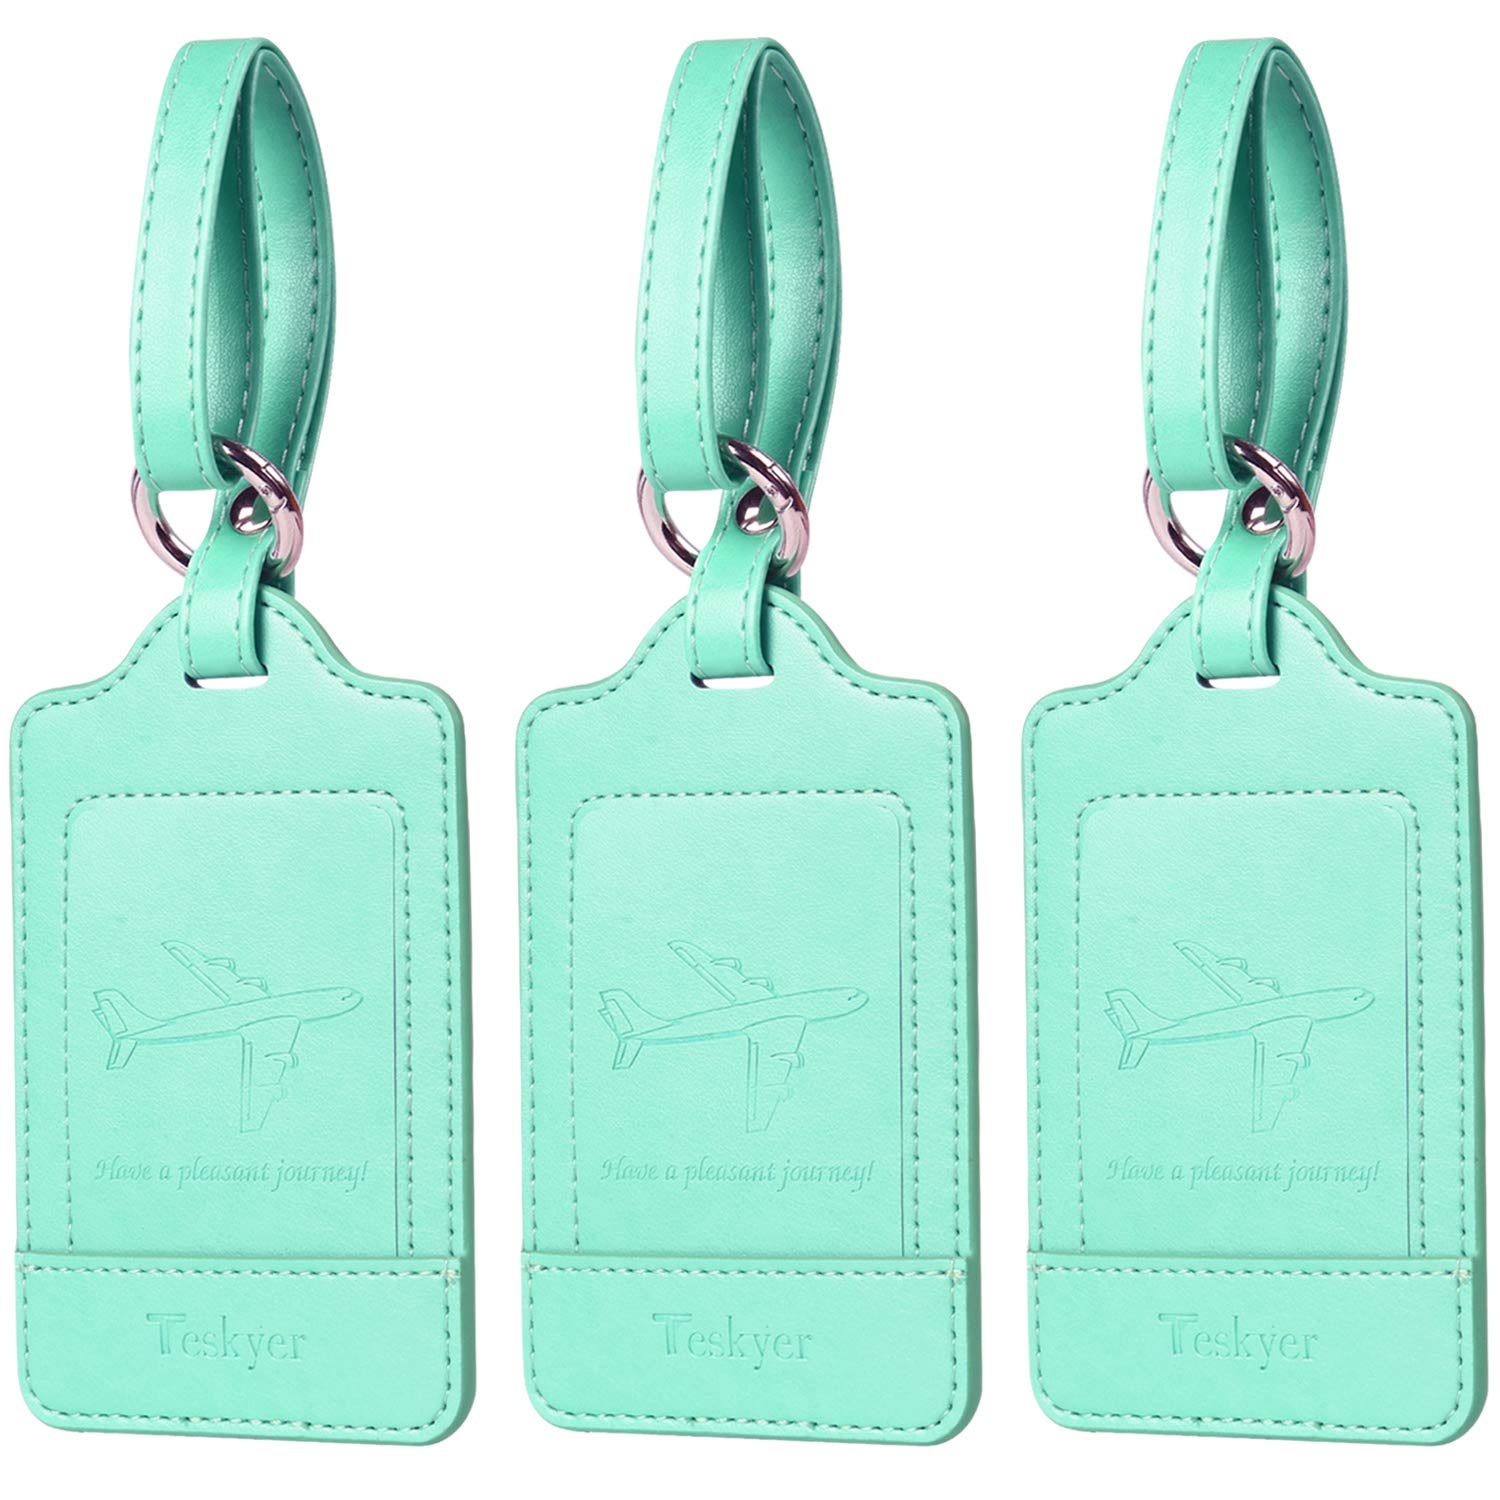 3 Pack Teskyer Premium PU Leahter Luggage Tags Privacy Protection Travel Bag Labels Suitcase Tags-Red Luggage Tags